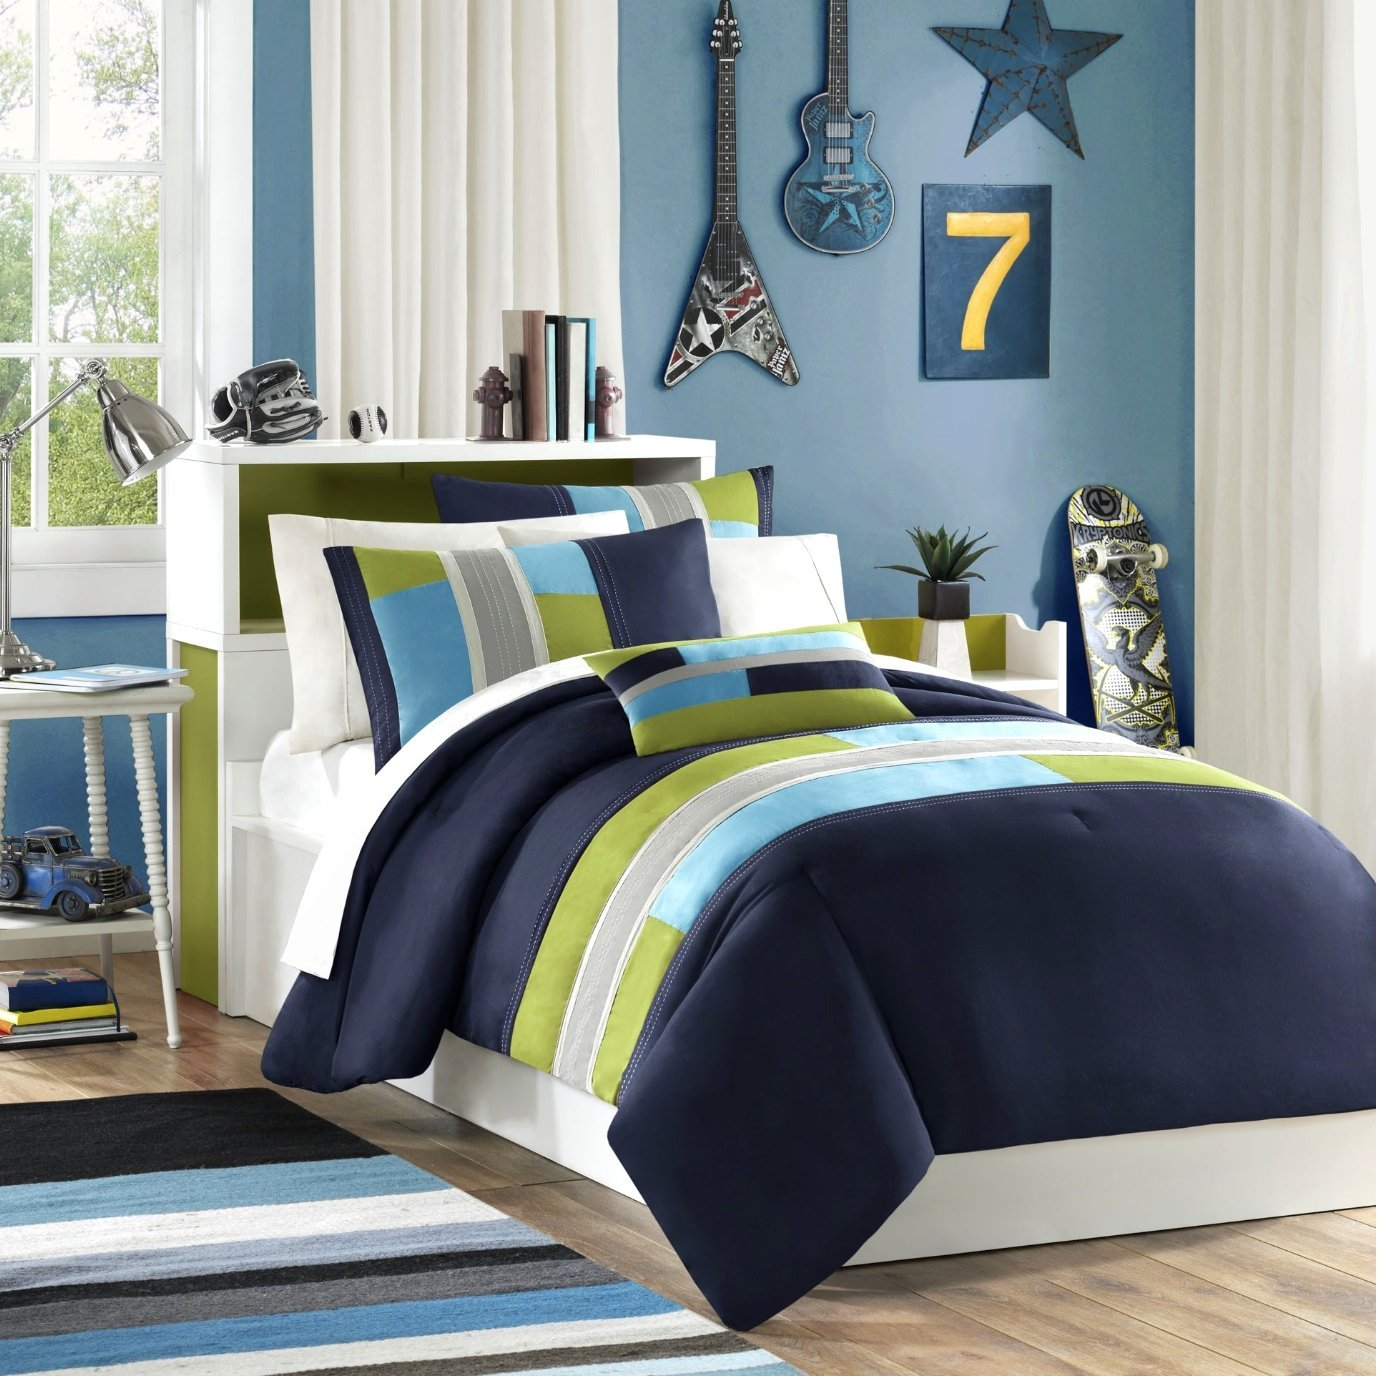 Bed Comforter Sets | King Size Comforters Target | Navy Blue Comforter